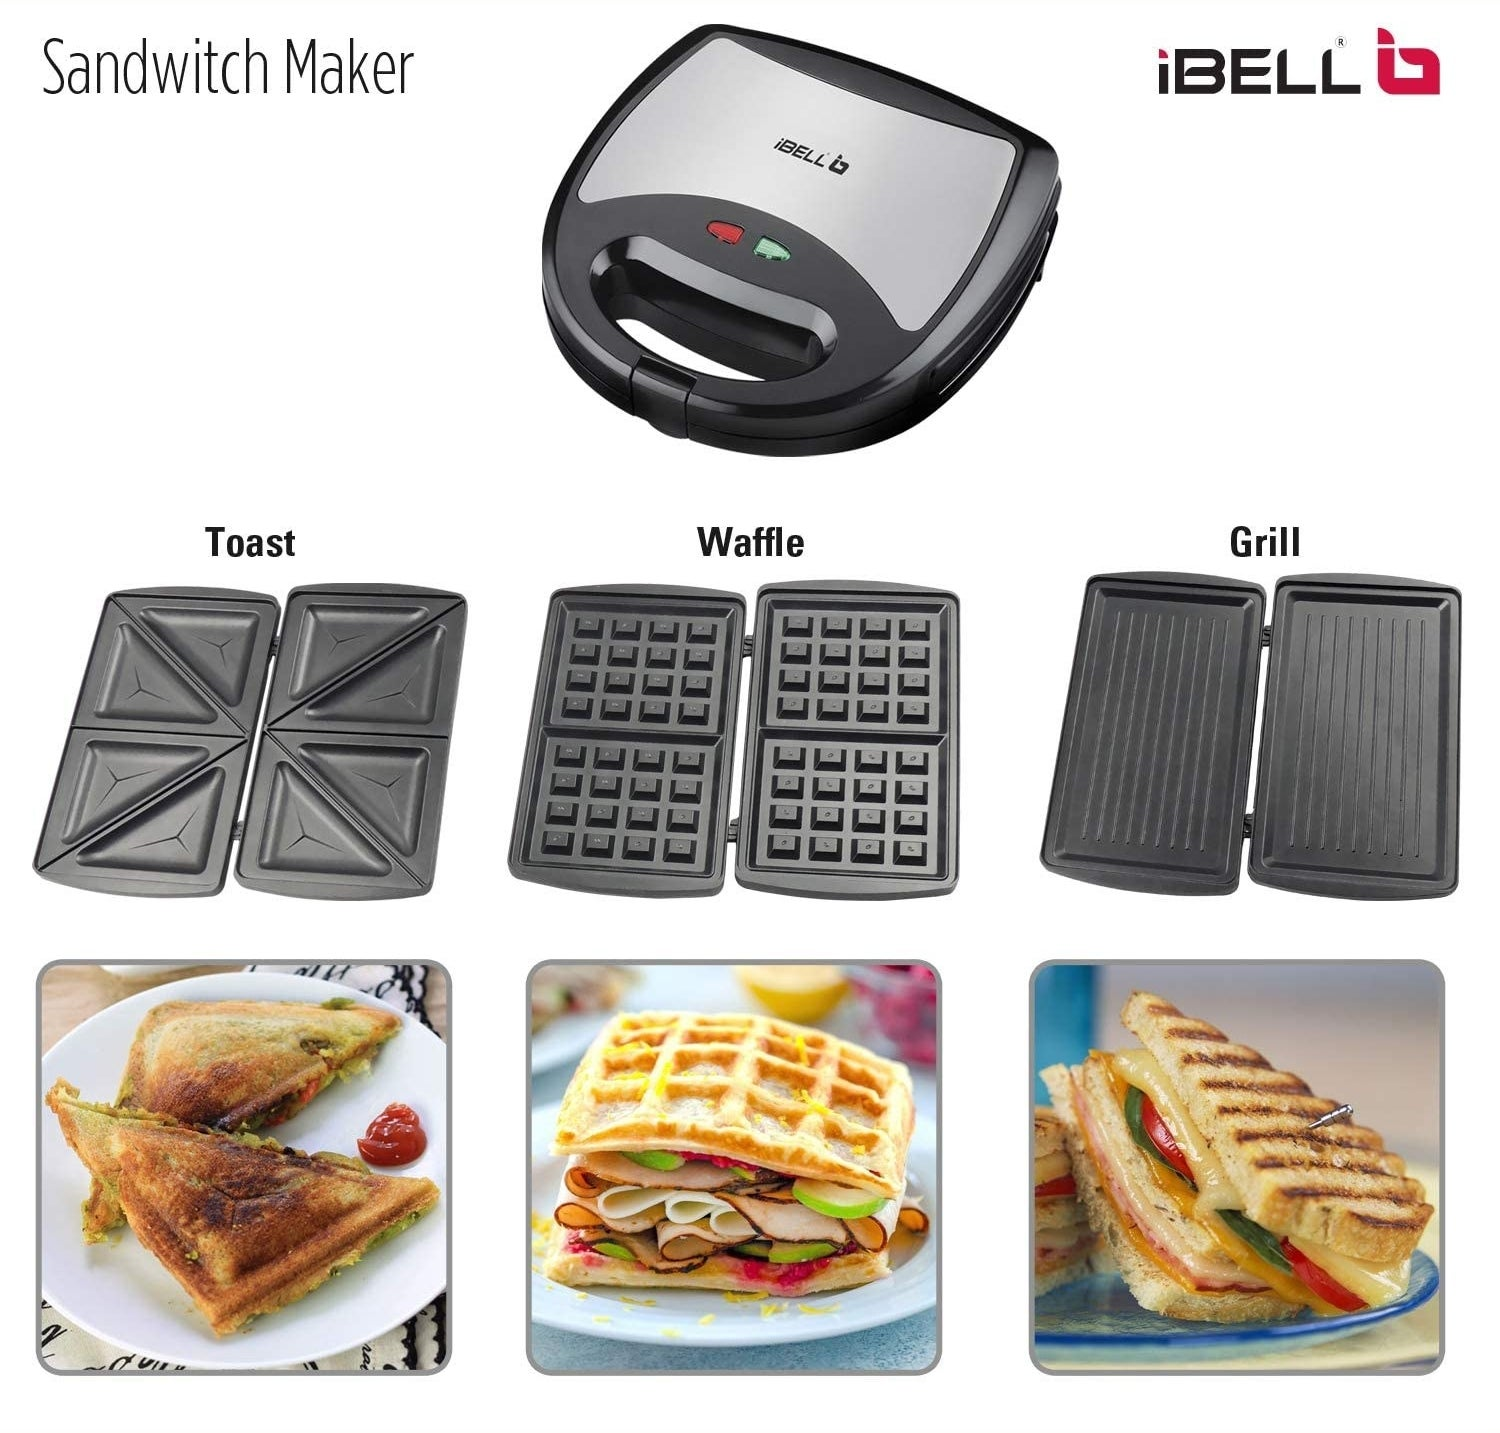 You can use the wafflemaker to make toaste, waffles, and grilled sandwiches